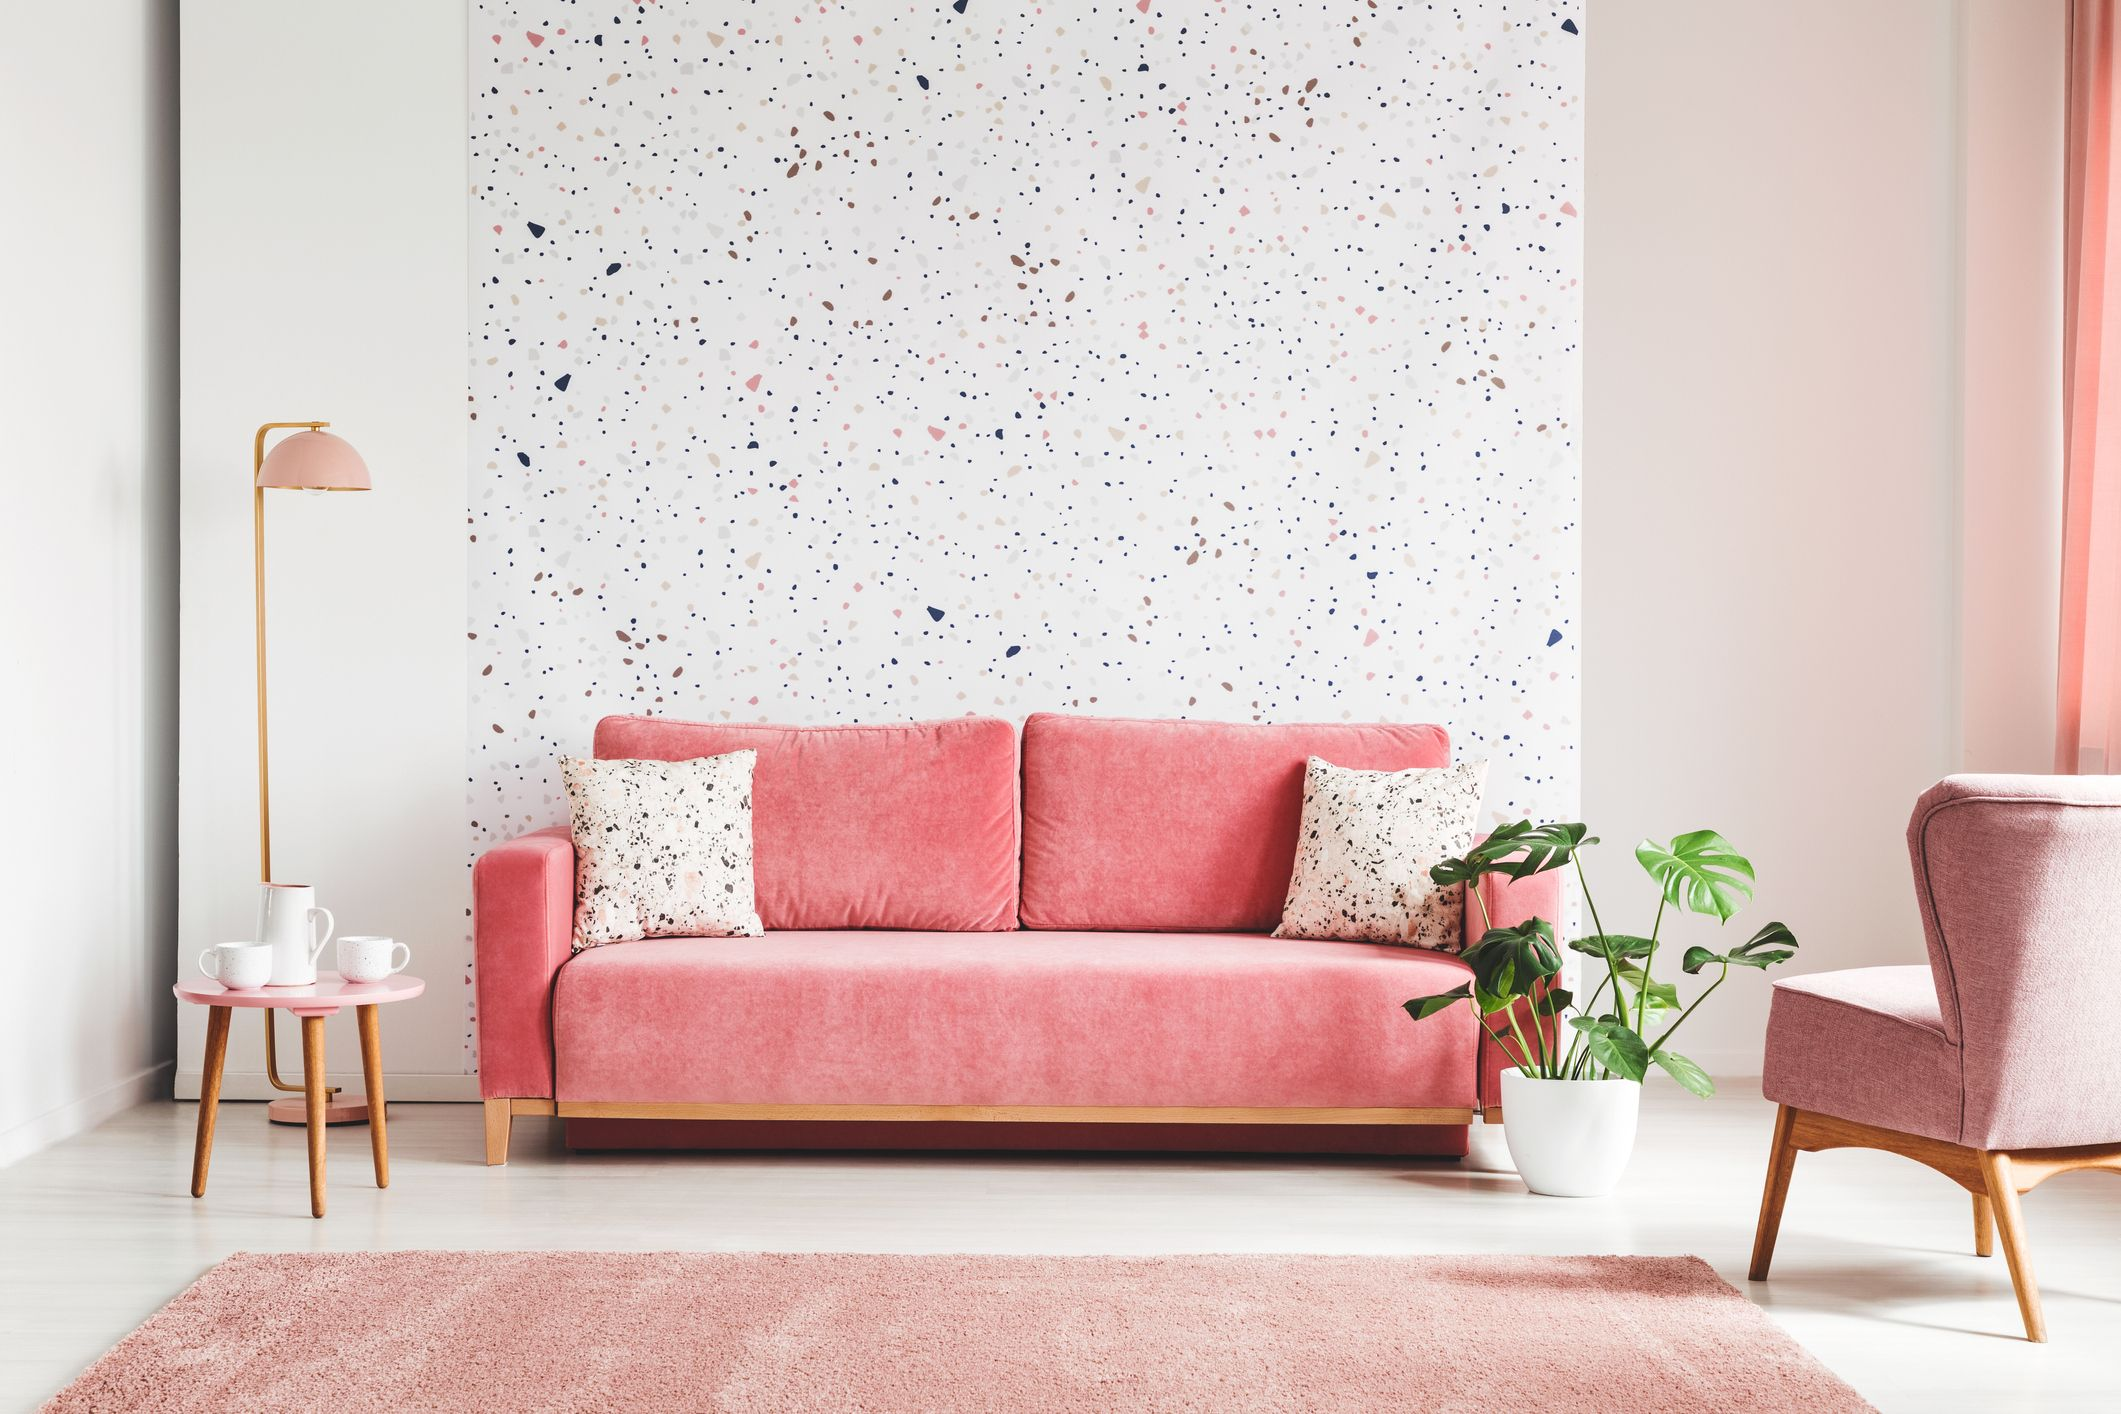 Removable Wallpaper 20 Options To Jazz Up Your Rented Flat